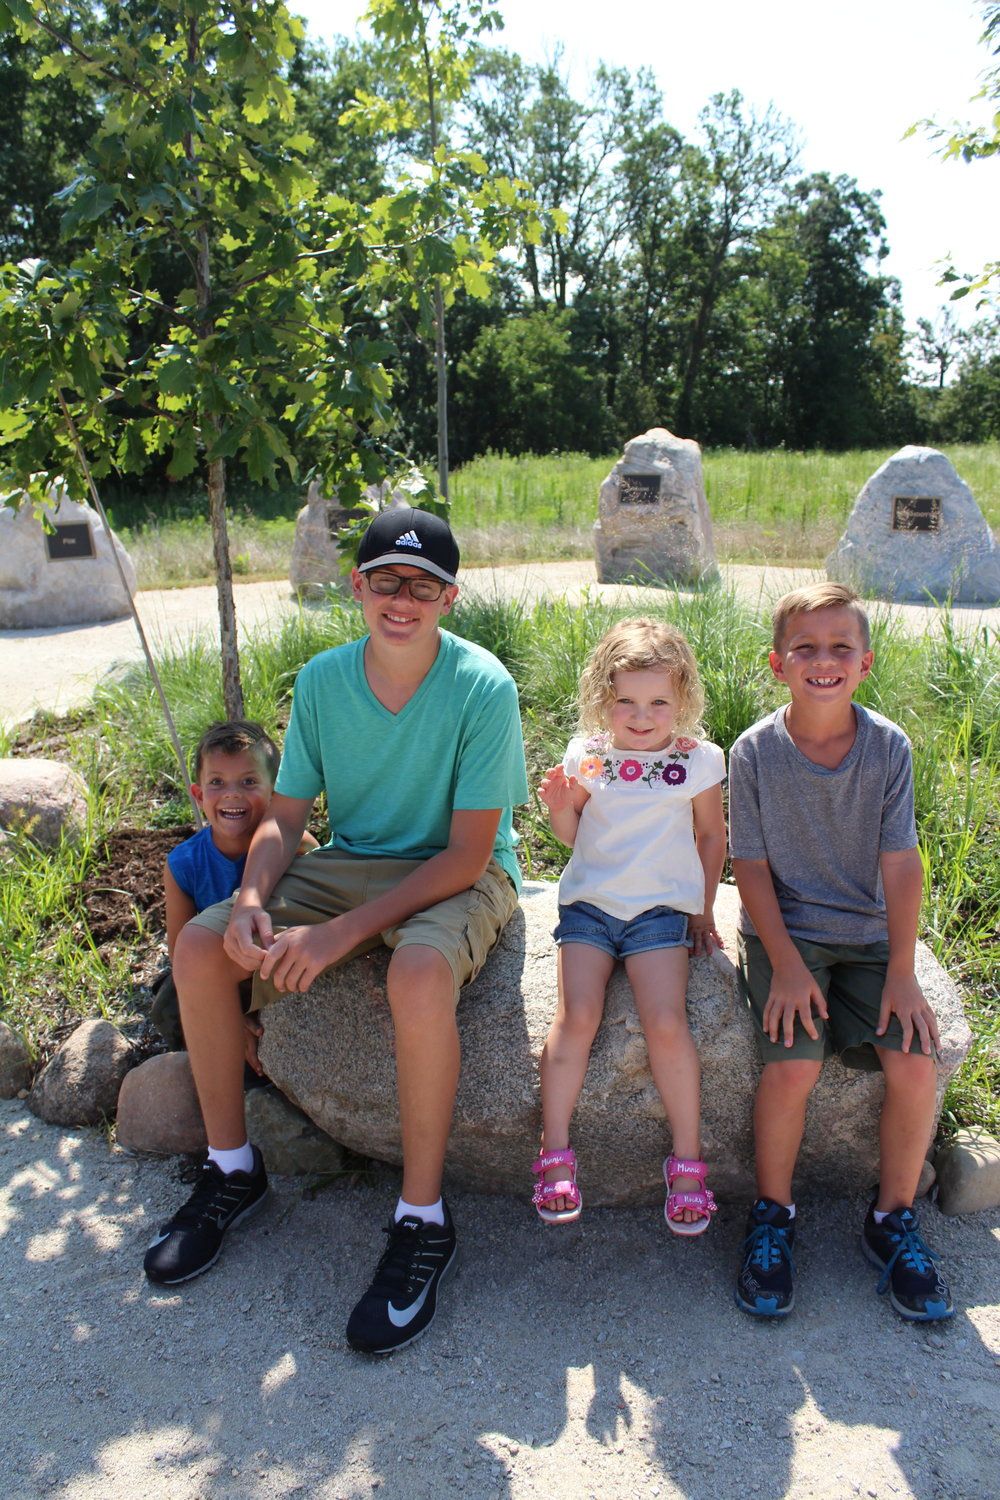 Smiling kids at Prophetstown State Park